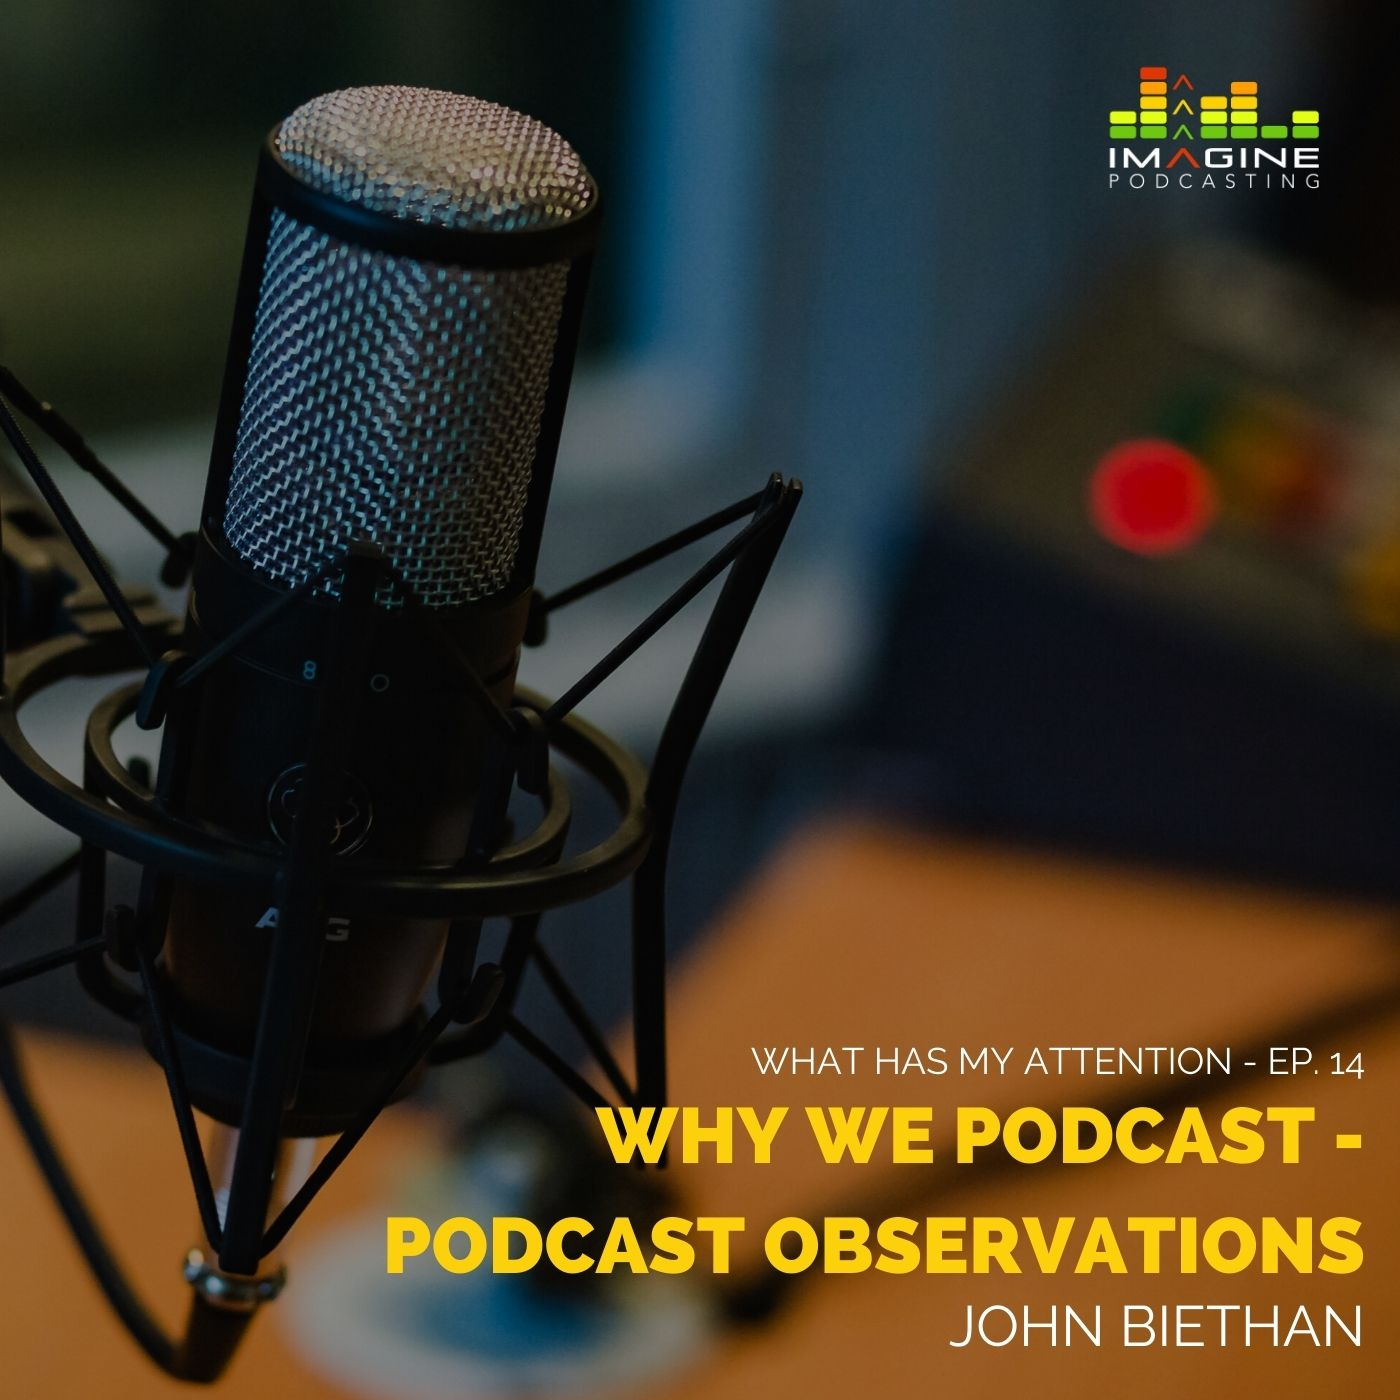 Ep. 14 Why We Podcast - Podcast Observations